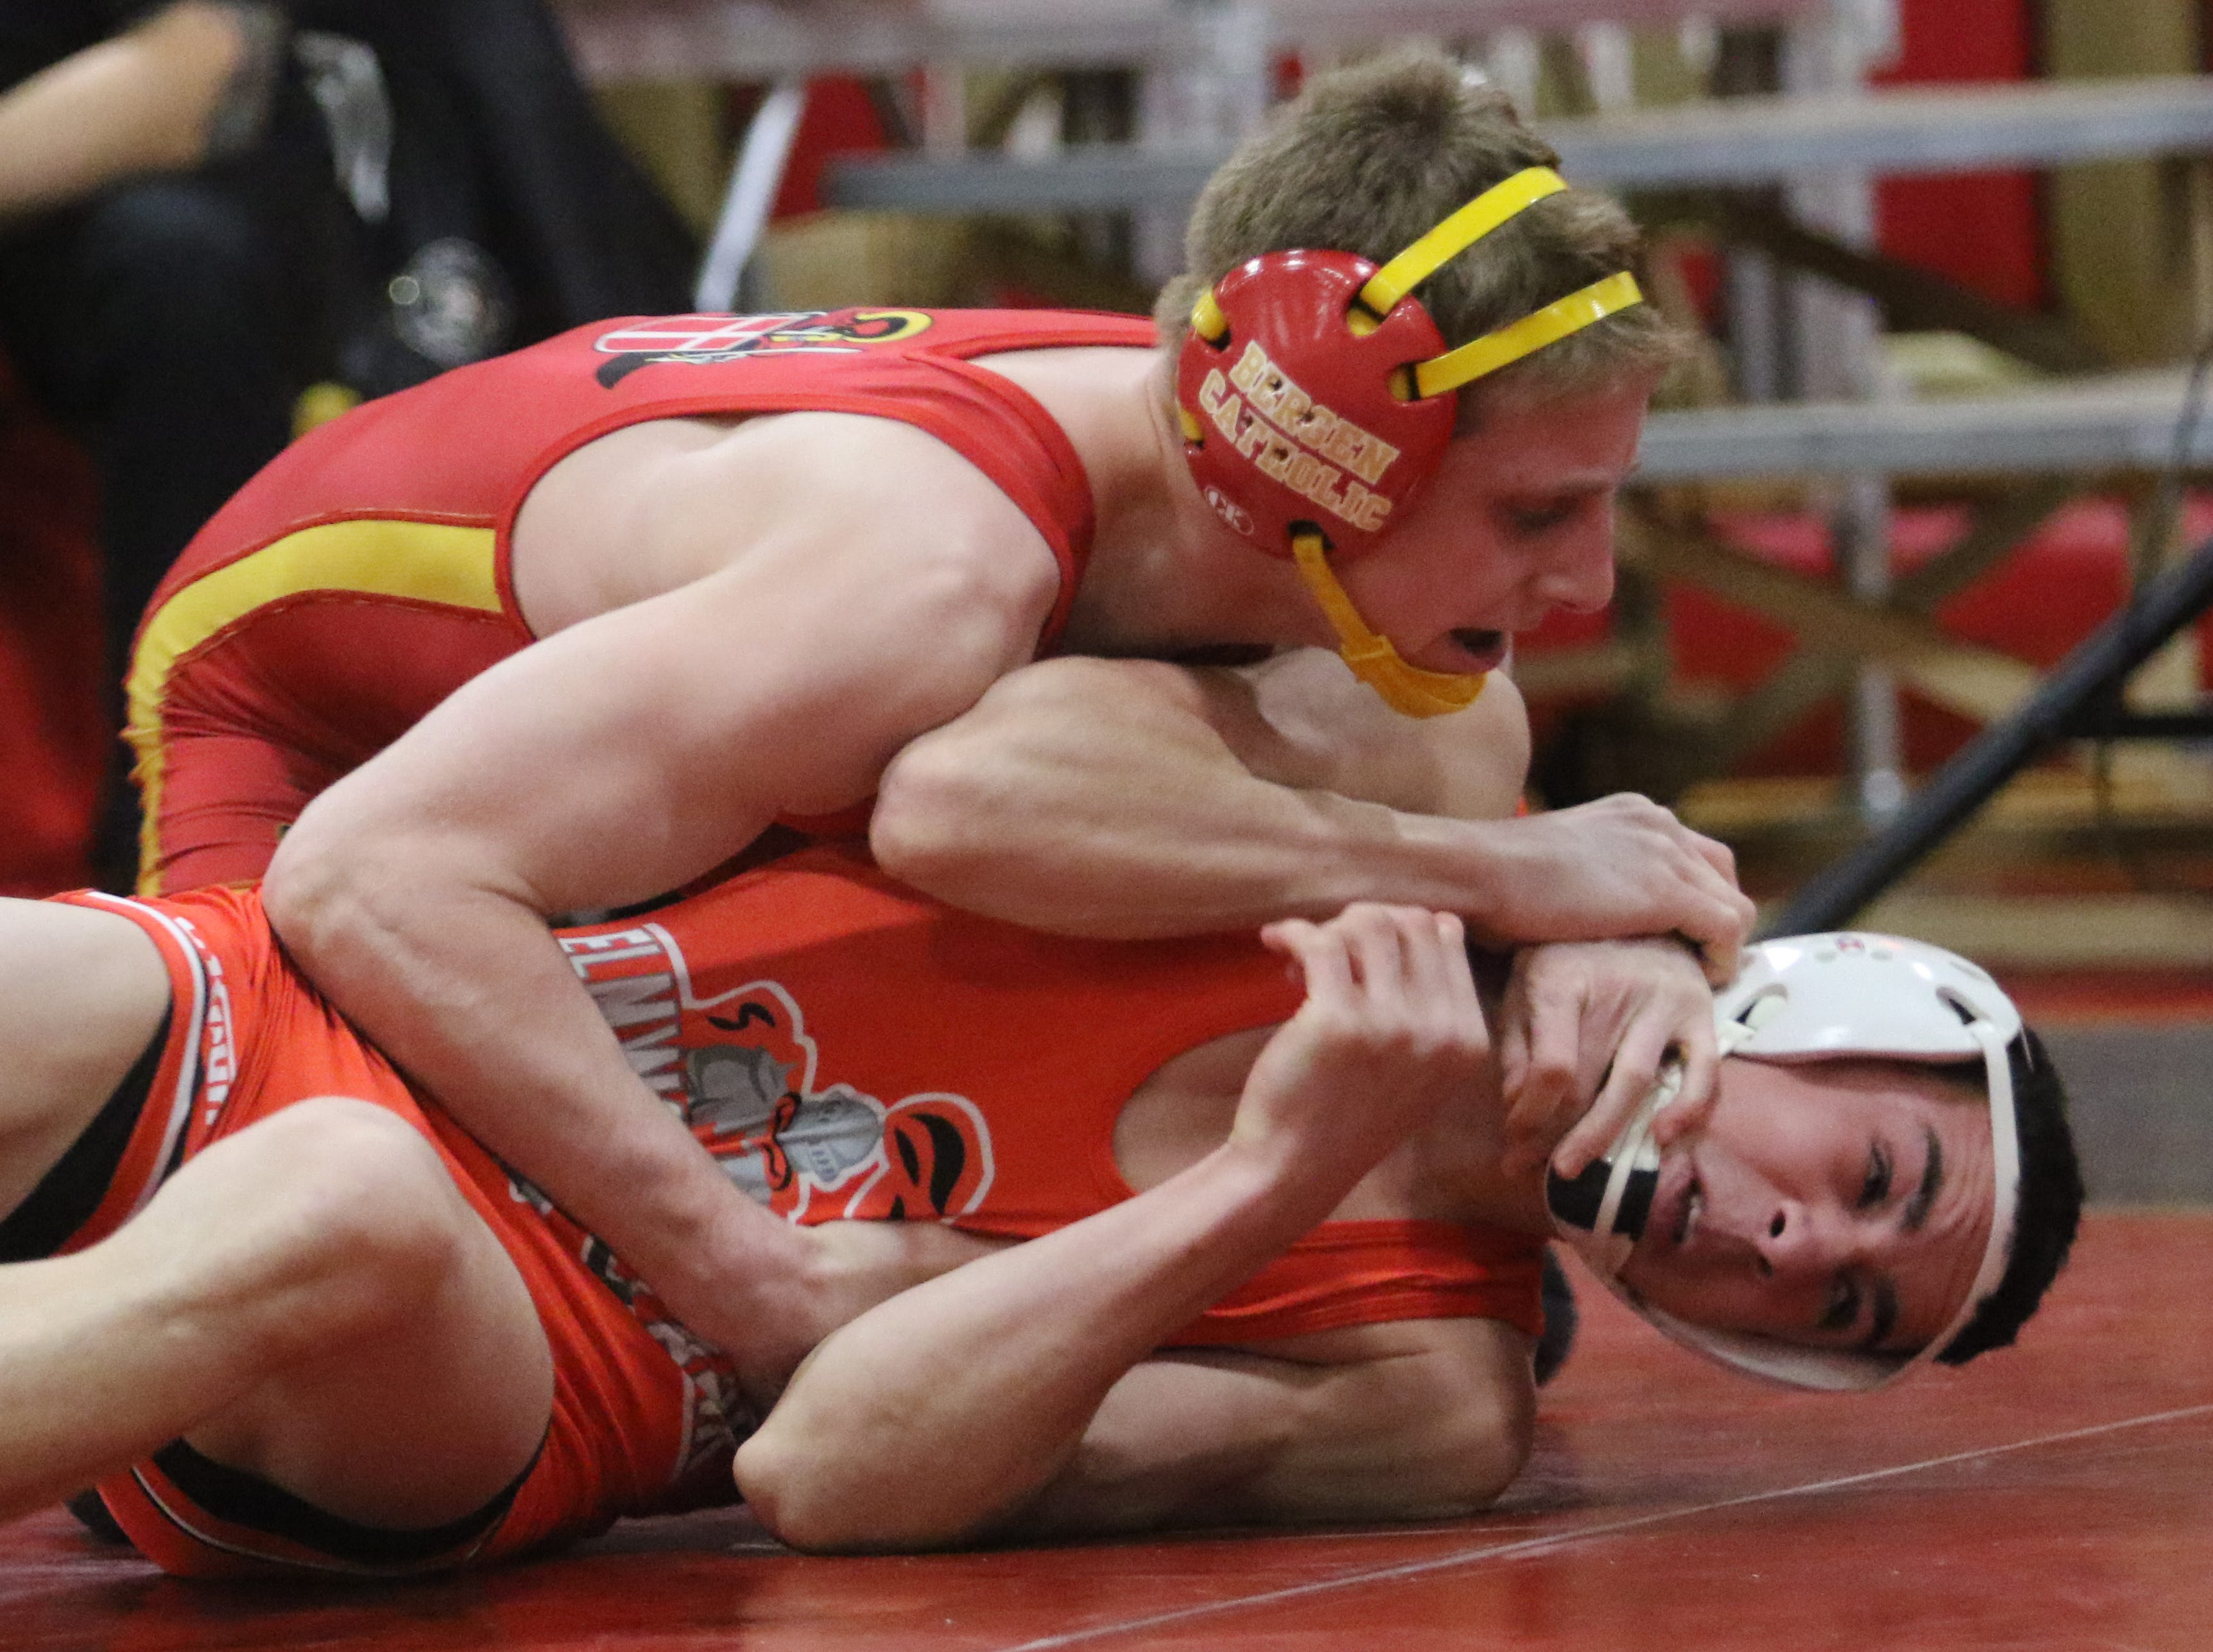 Dylan Cedeno of Bergen Catholic defeated Zack Martinez of Elmwood Park in the 120 lb. semi final match at the Region 2 wrestling tournament at Mt. Olive HS on February 23, 2019.